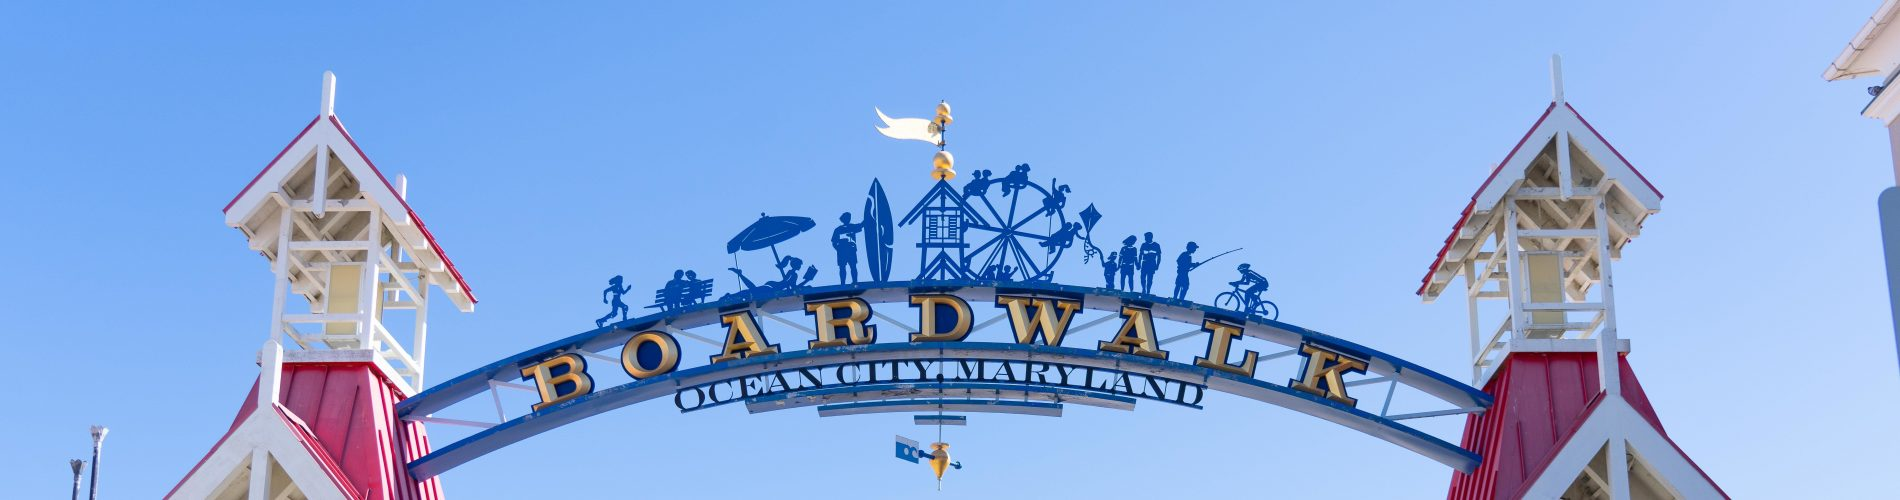 A photo of the Ocean City Maryland Arch